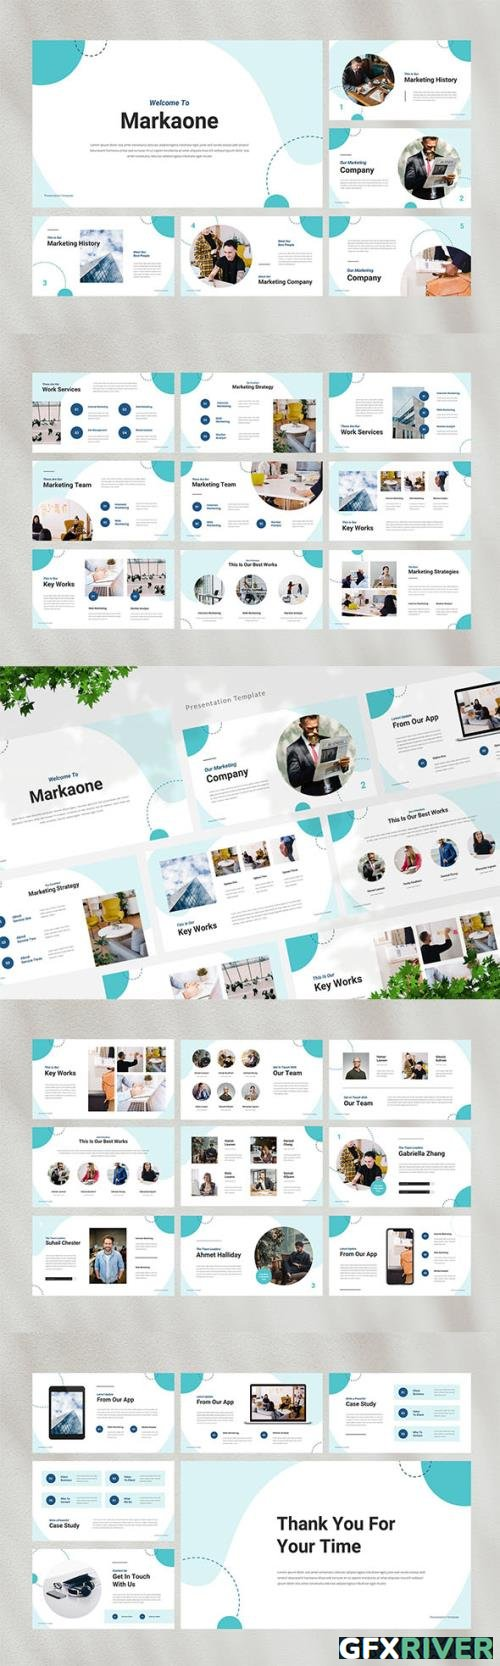 Marketing Powerpoint, Keynote and Google Slides Template